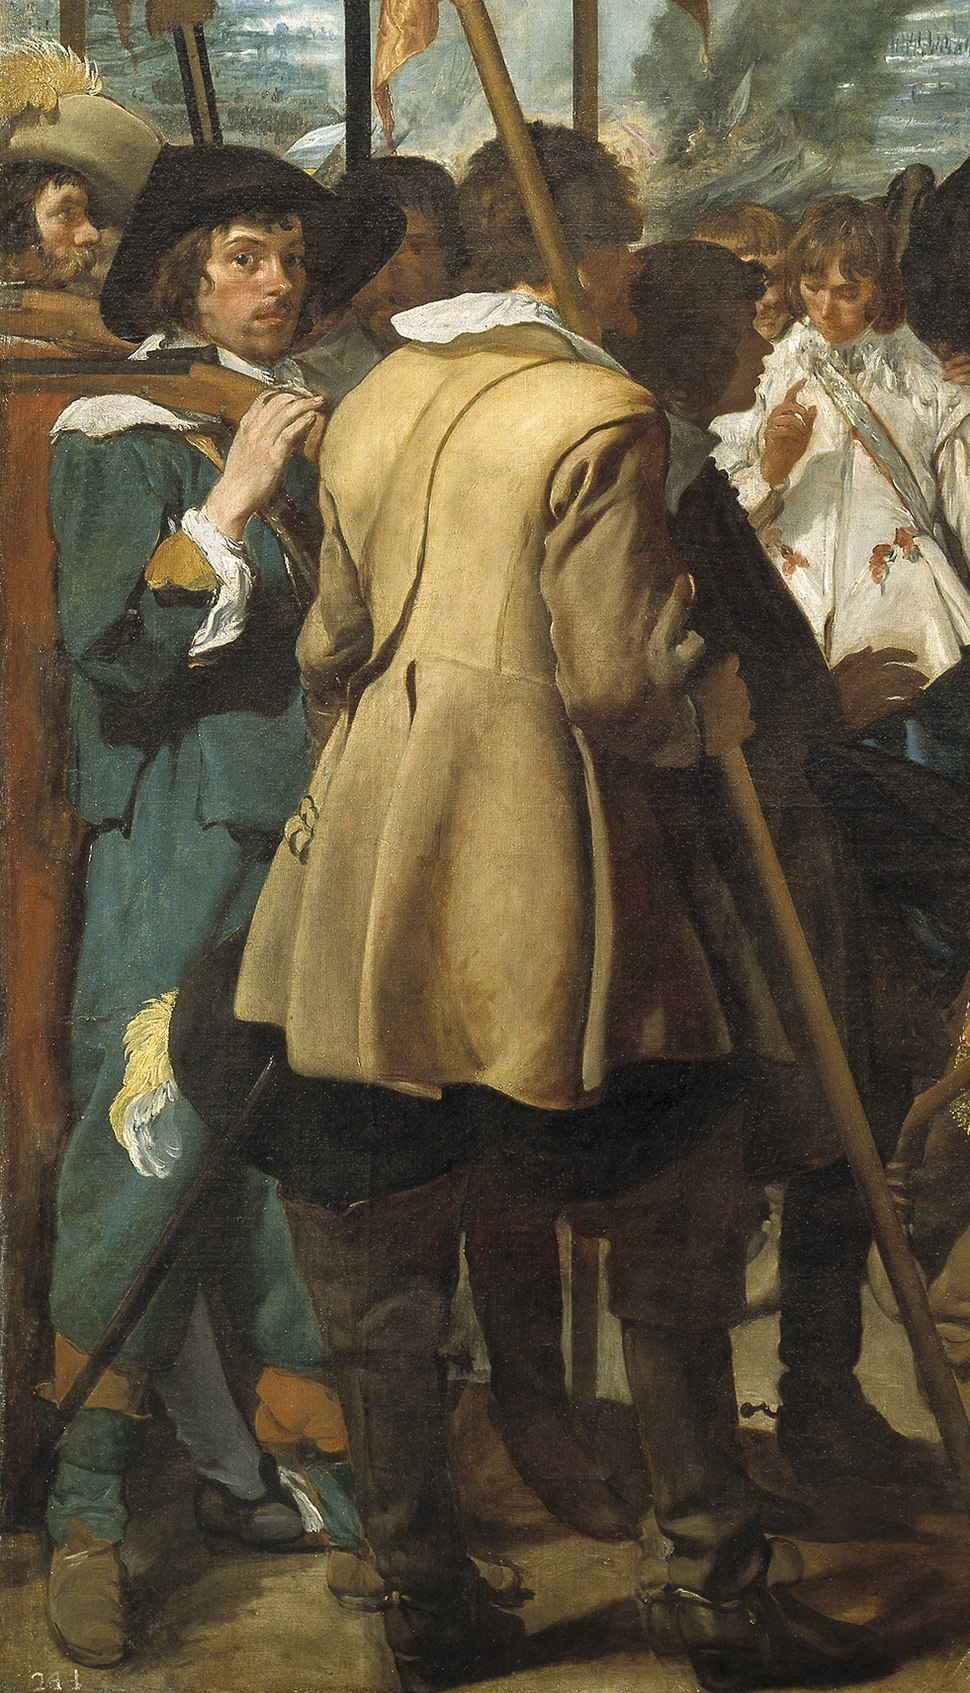 Velazquez surrender breda soldiers